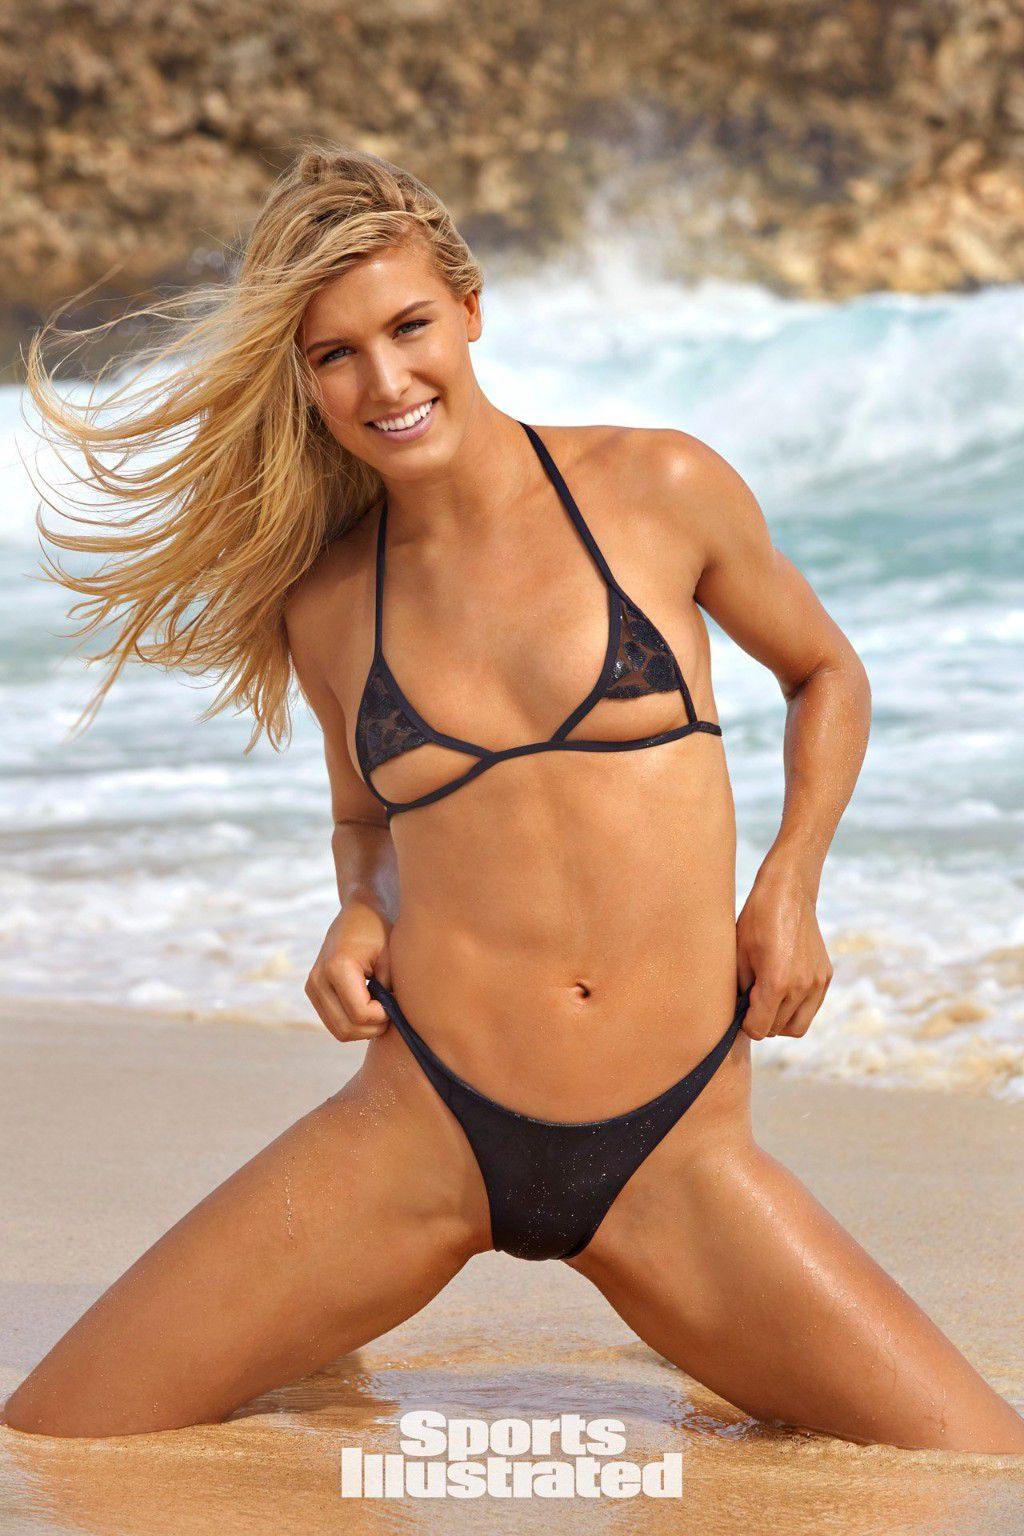 eugenie-bouchard-super-sexy-in-sports-illustrated-swimsuit-issue-2018-21